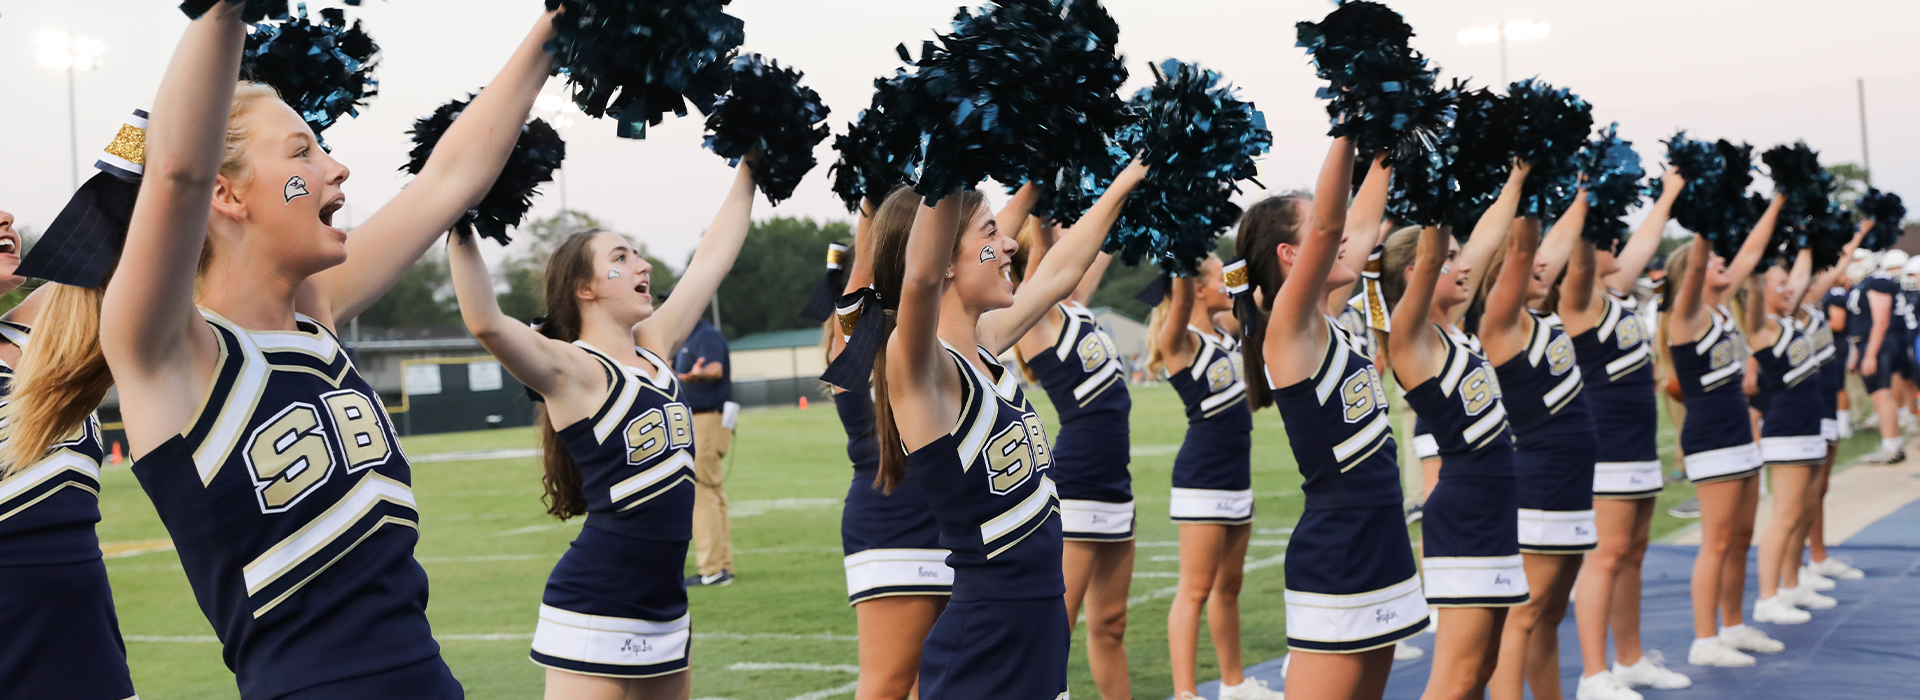 High school cheerleaders supporting the SBS football team at a game